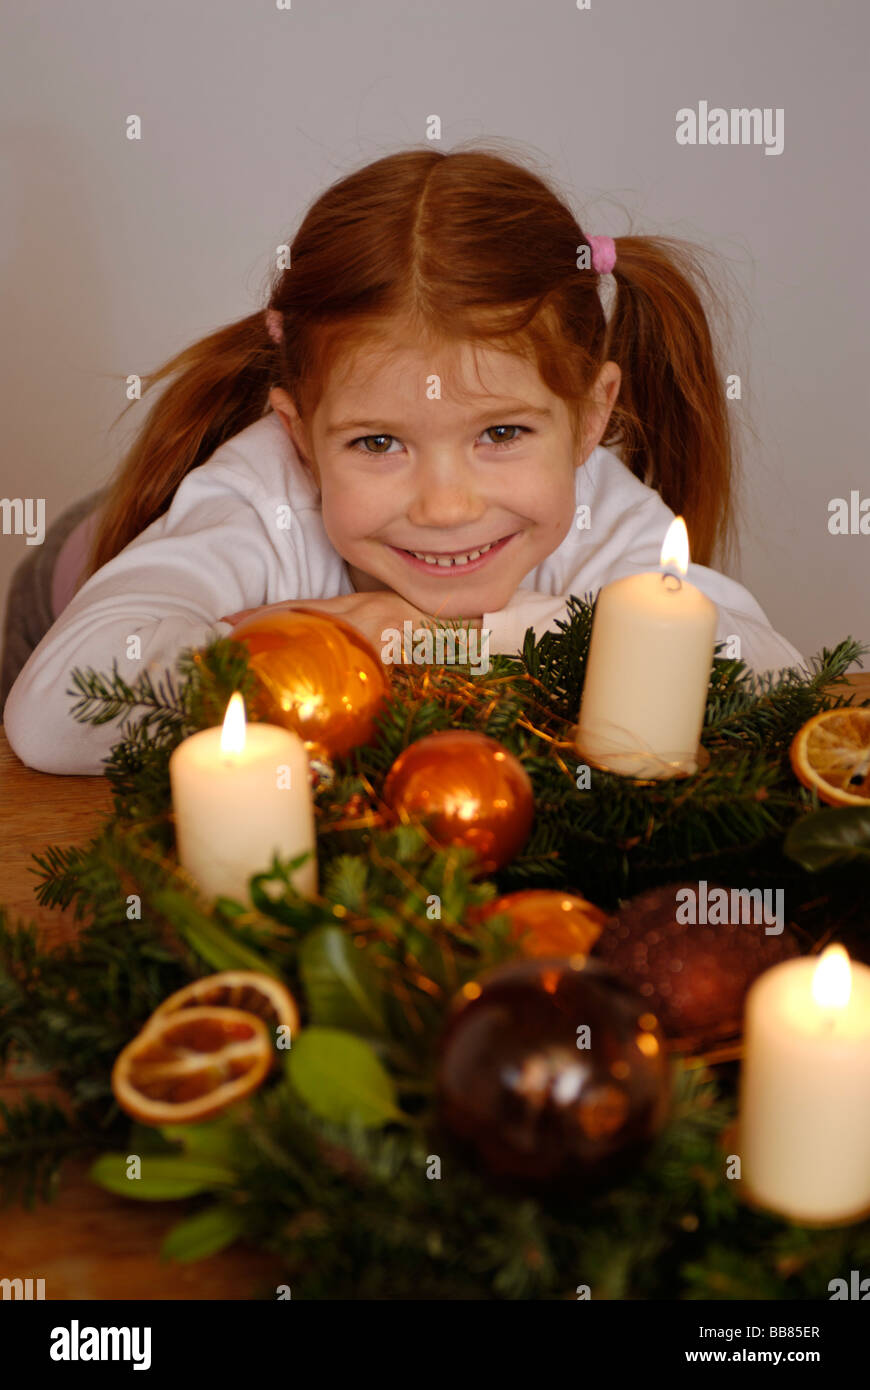 Girl with an advent wreath - Stock Image